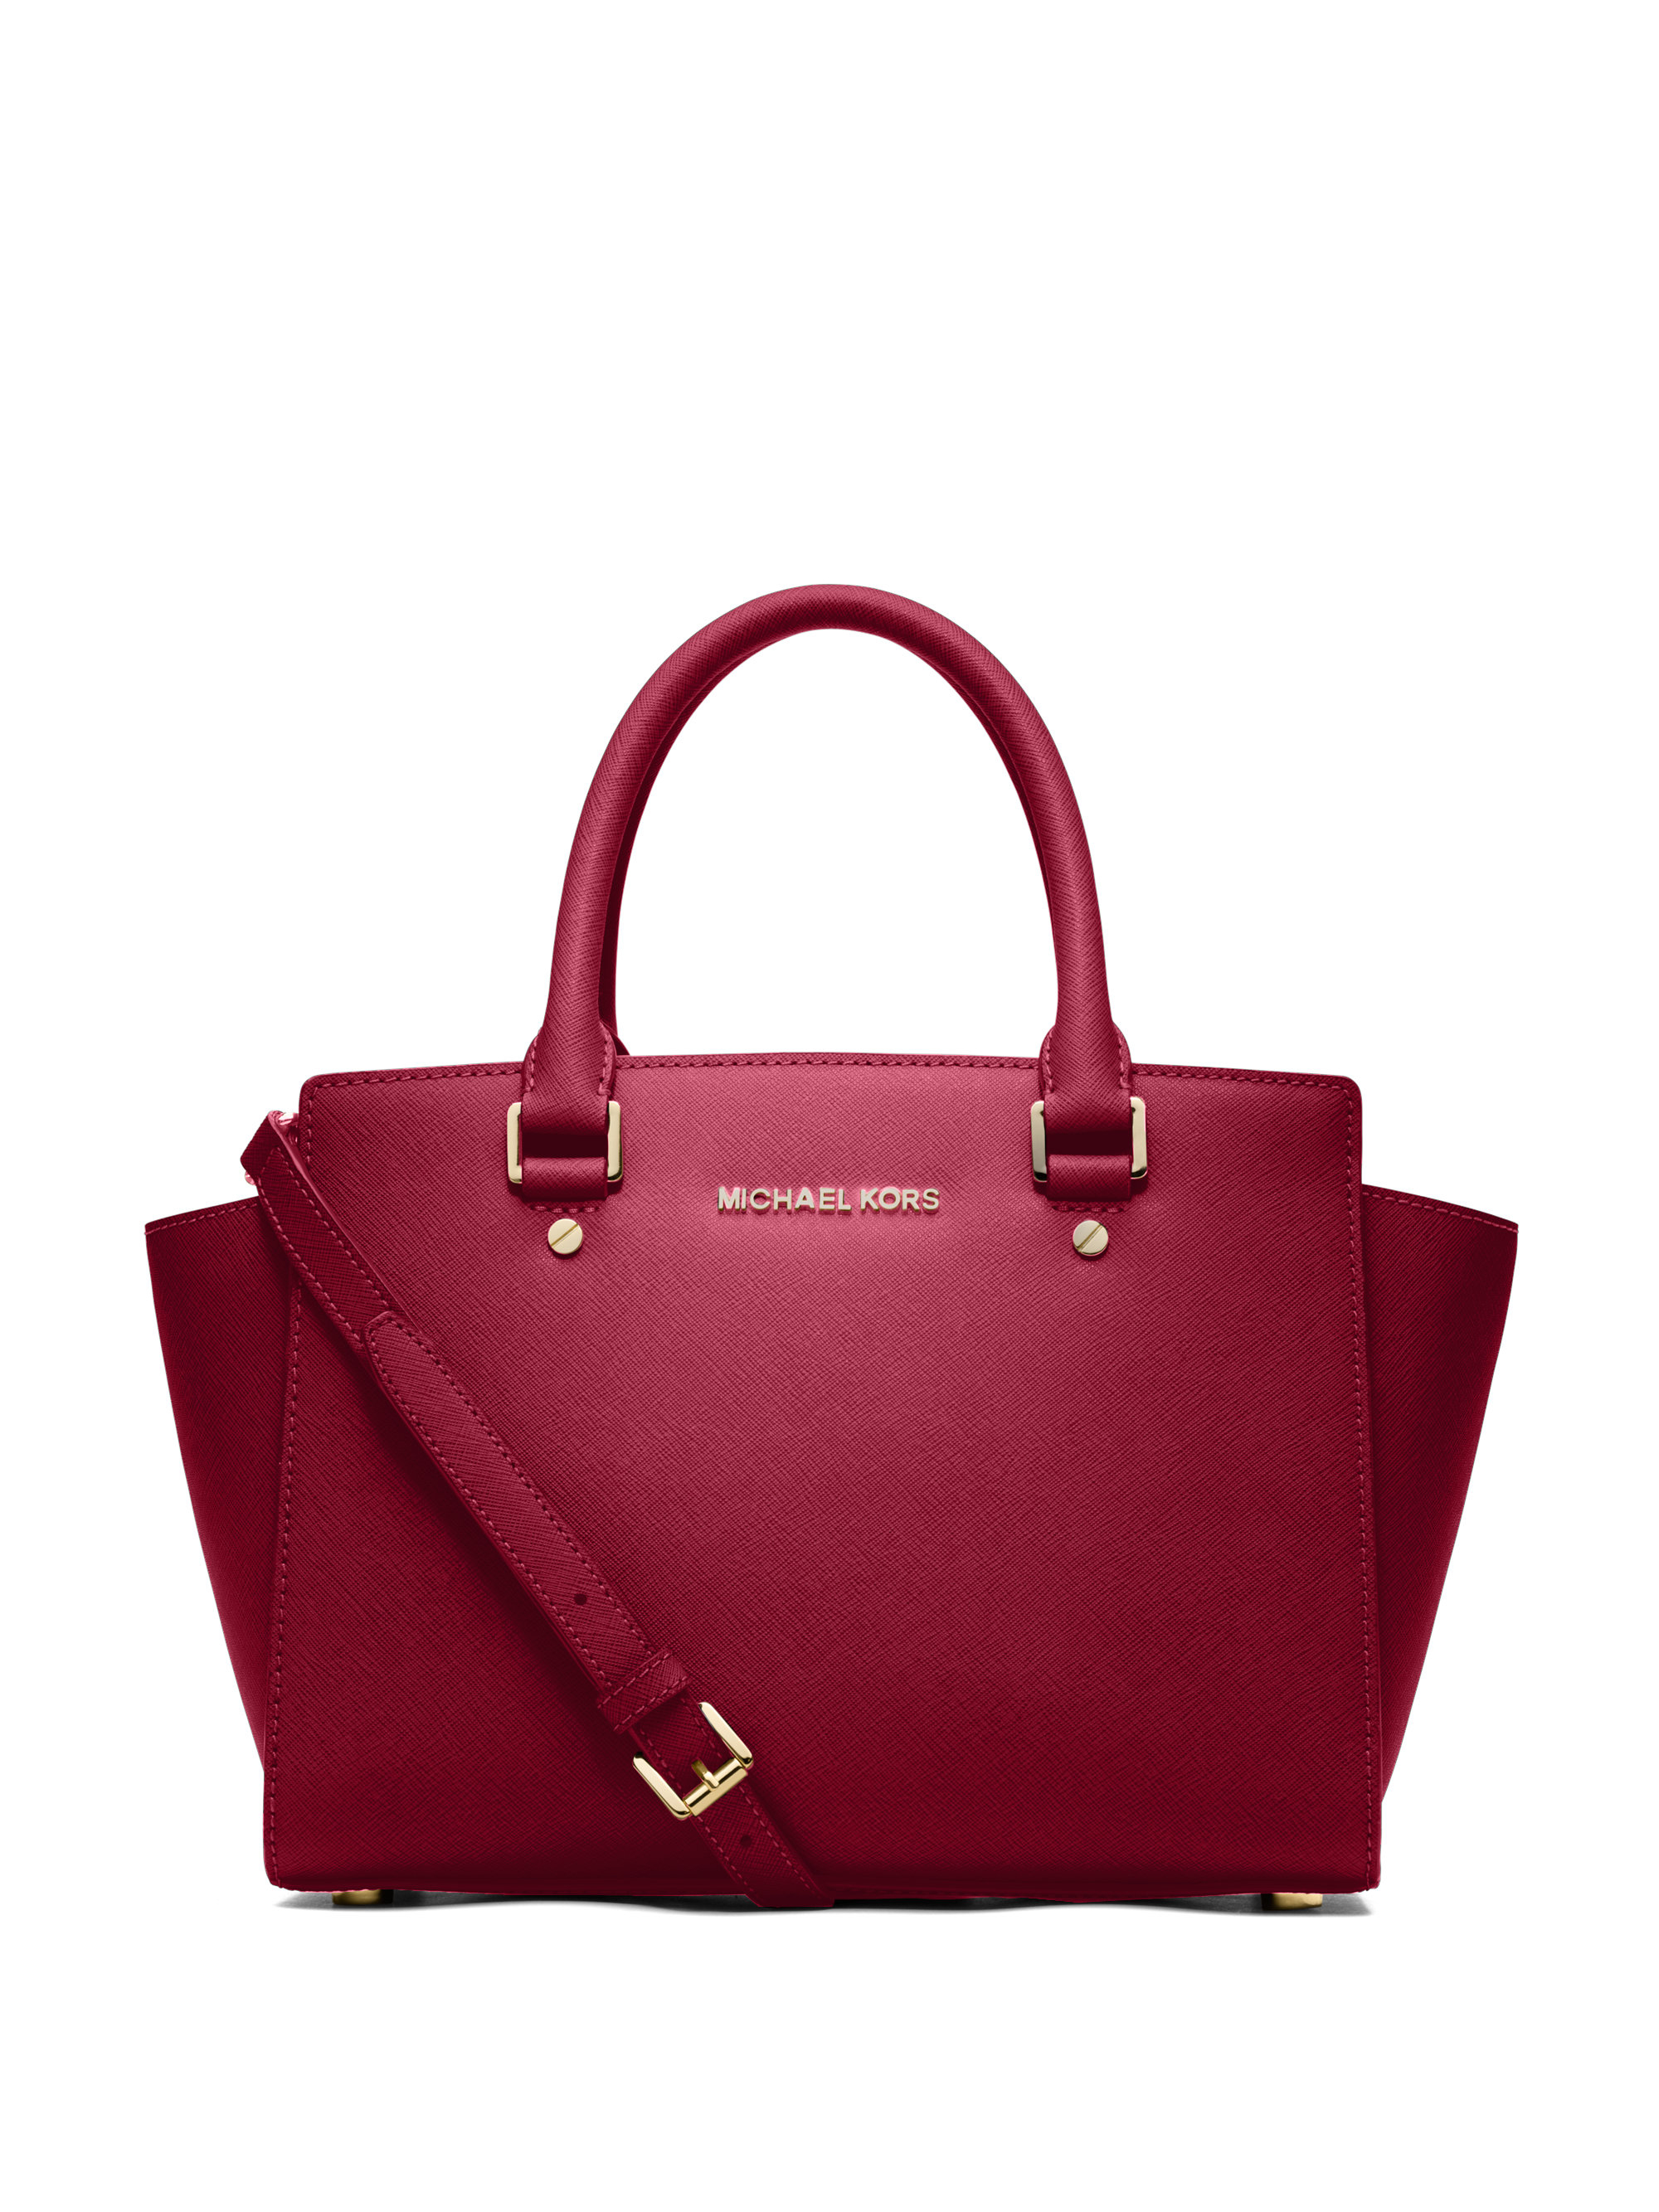 michael michael kors selma medium saffiano leather satchel in red lyst. Black Bedroom Furniture Sets. Home Design Ideas